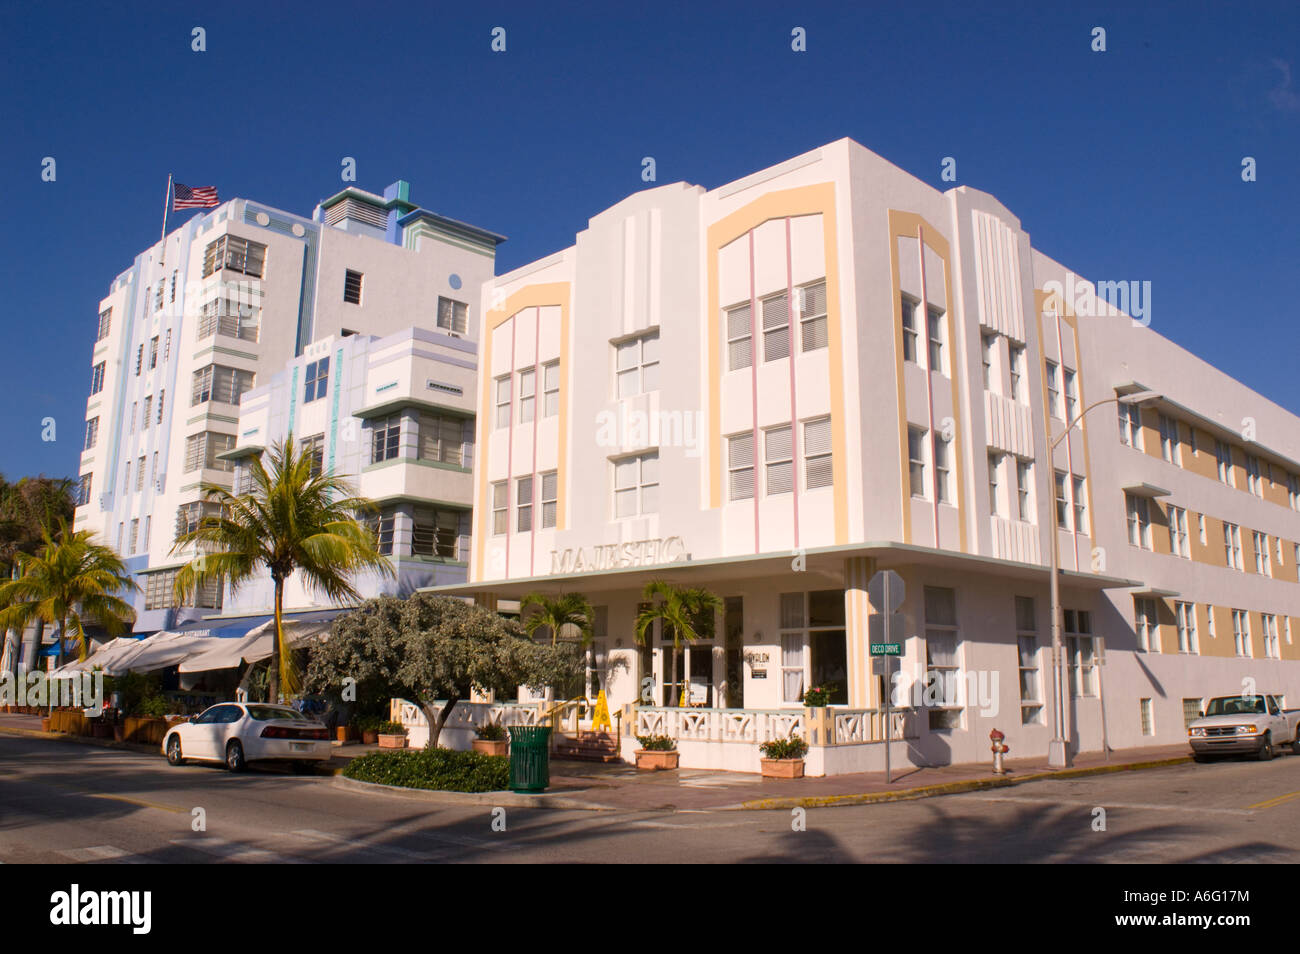 miami beach florida usa the majestic hotel on ocean drive in south